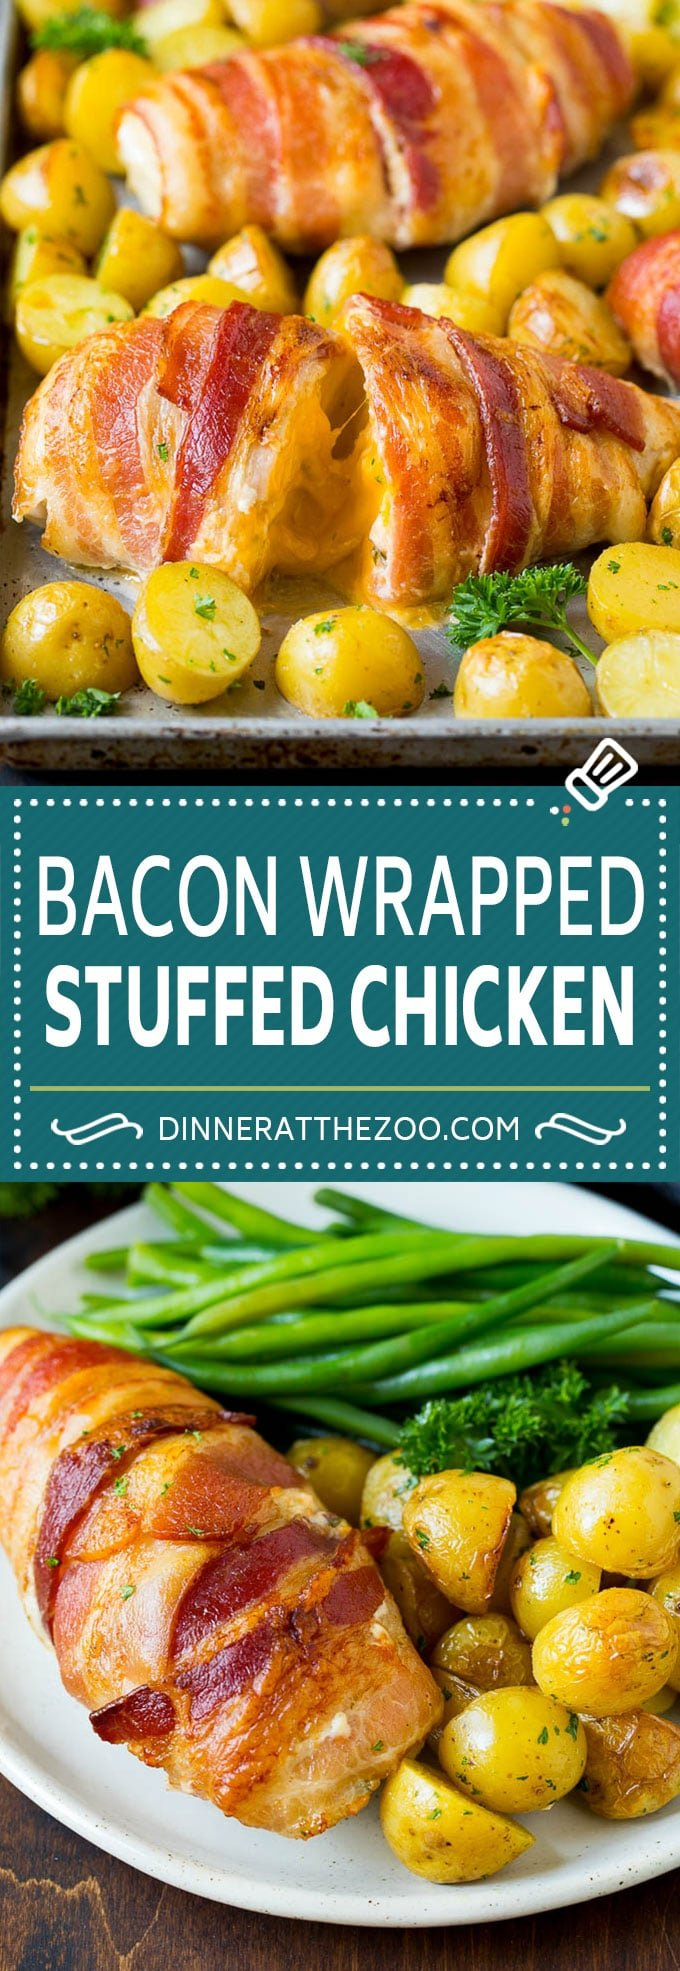 Bacon Wrapped Stuffed Chicken Breast Recipe | Sheet Pan Chicken #chicken #dinner #onepan #bacon #potatoes #dinneratthezoo